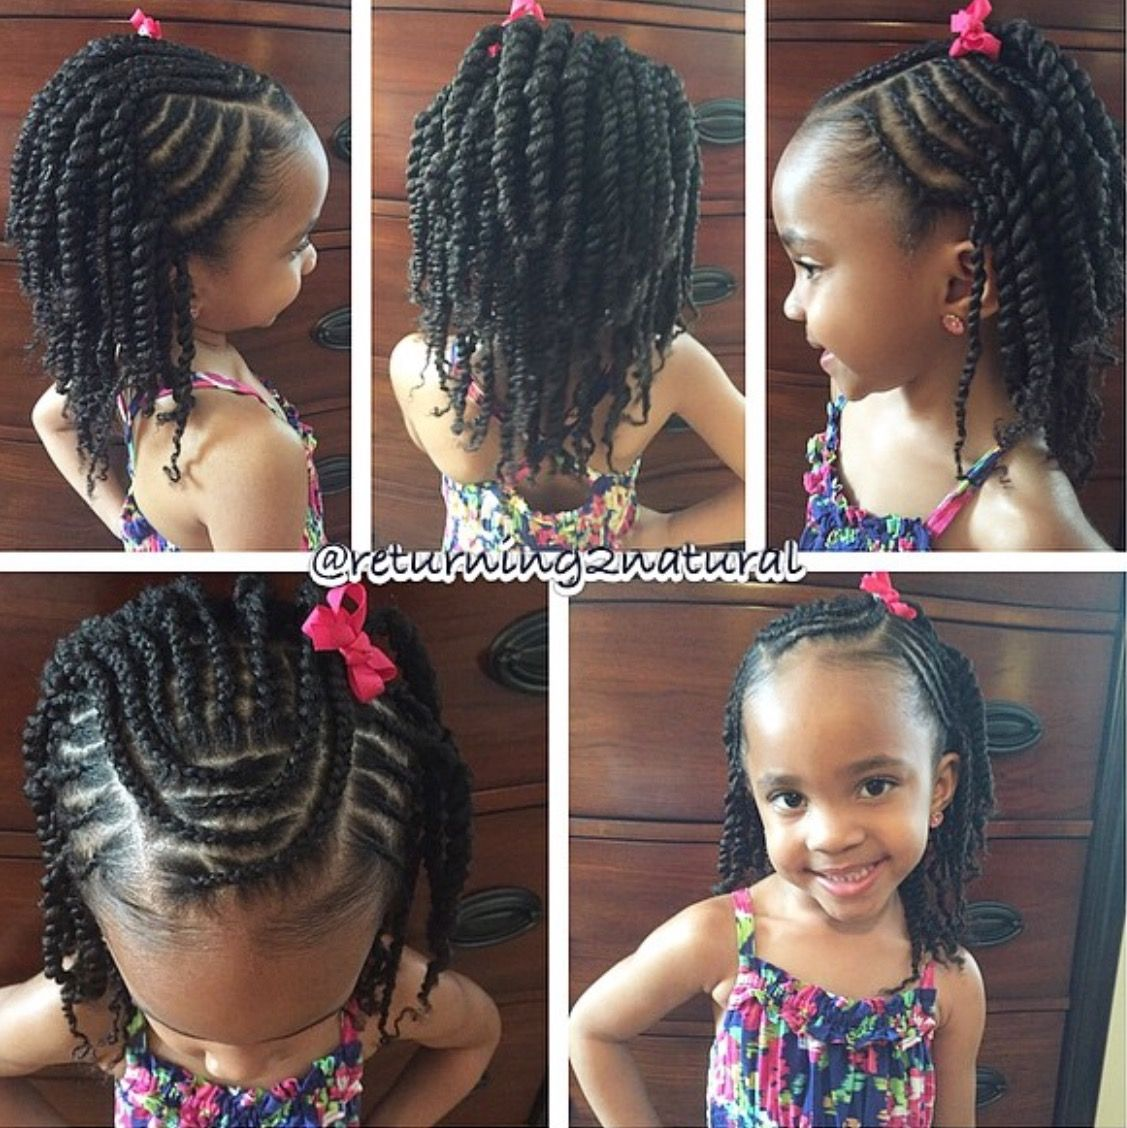 cornrows in front, 2-strand twists in the back   hair - for